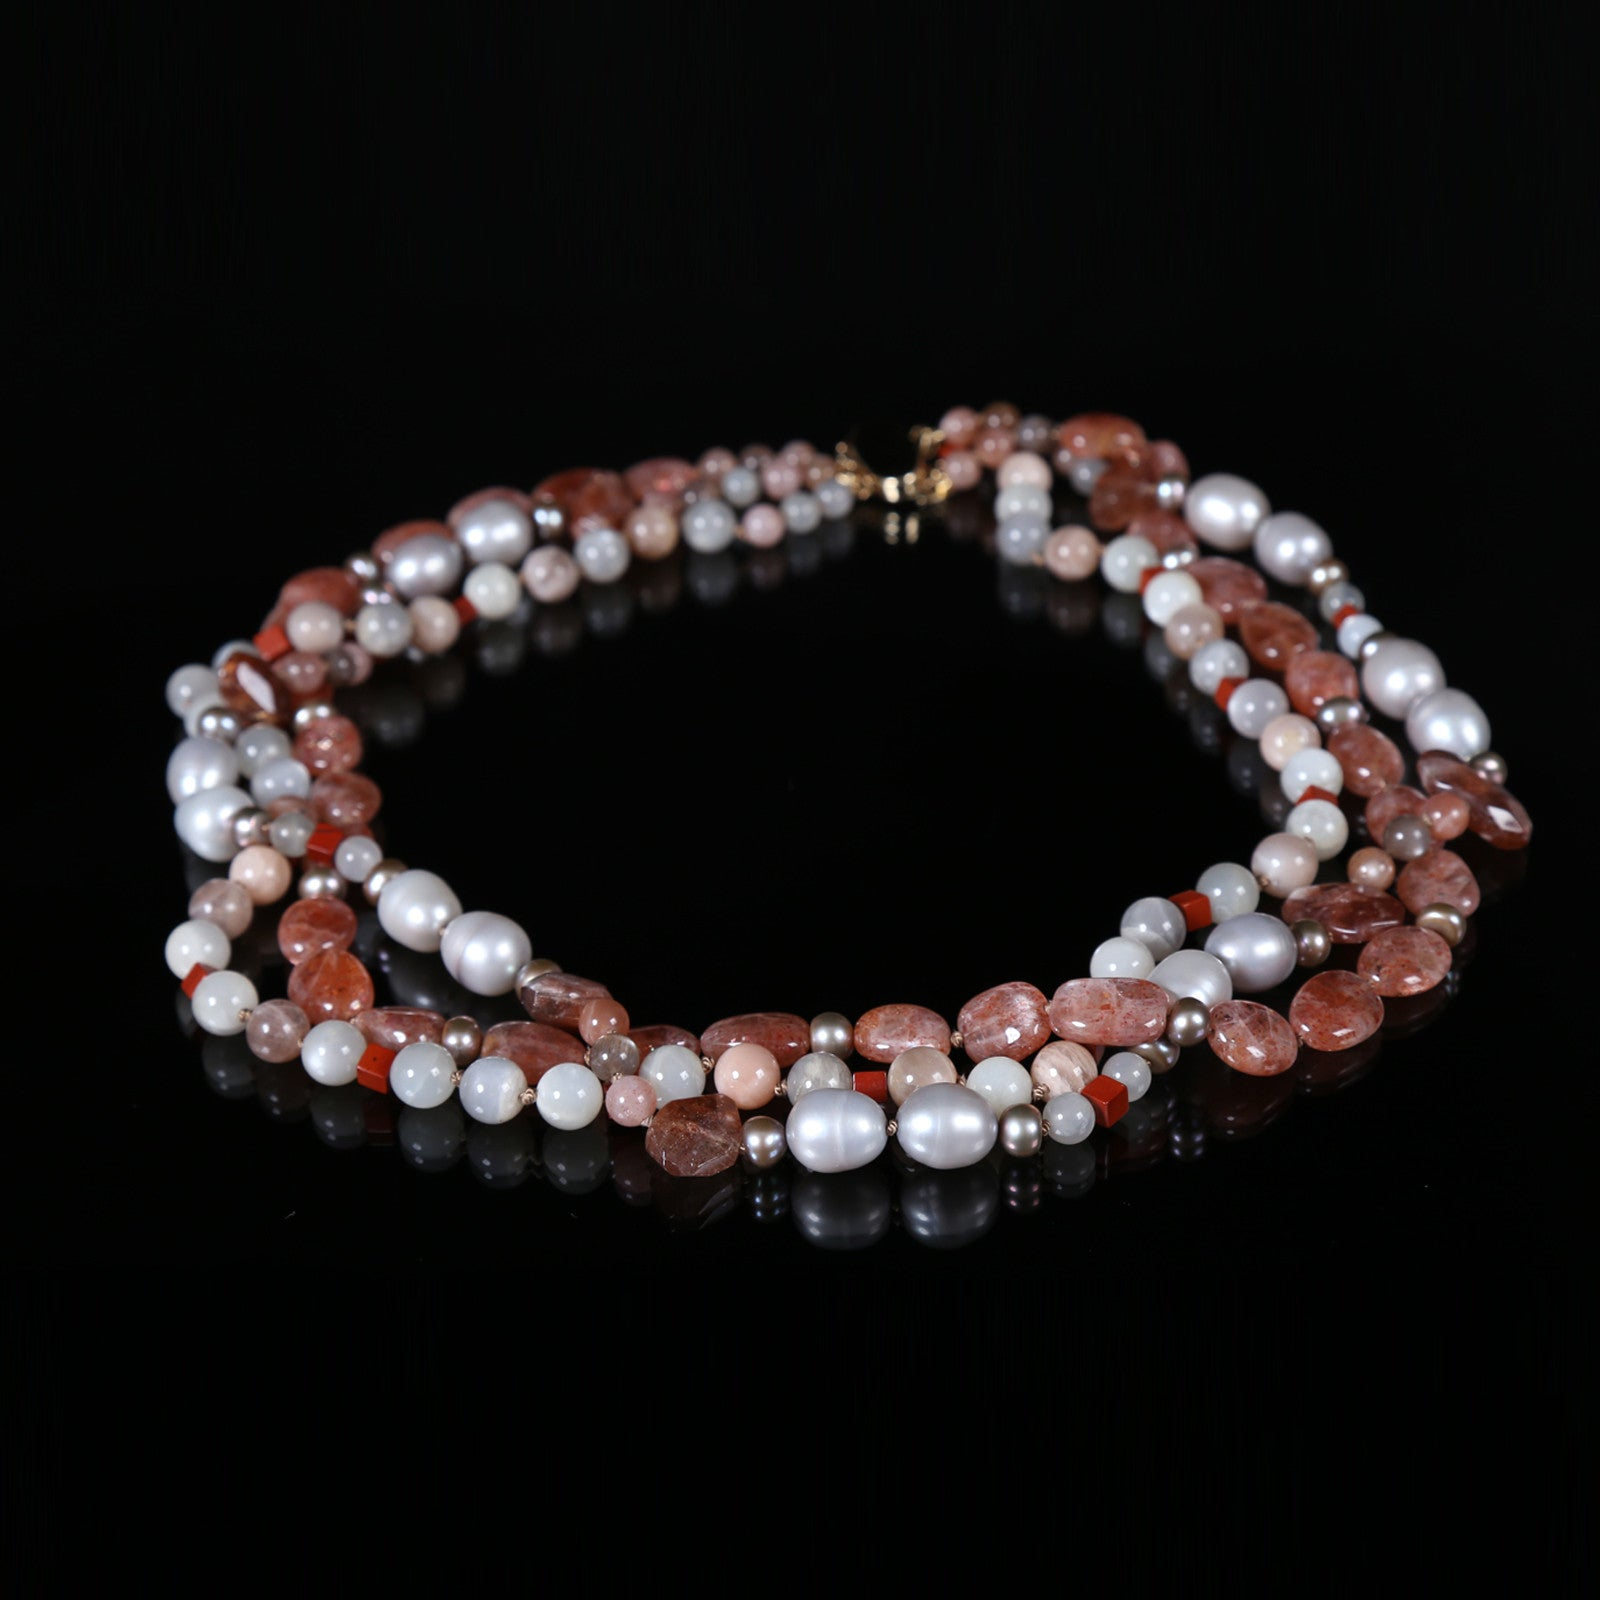 "White Orchid Studios | Made in the USA | Handcrafted couture jewelry inspired by nature. |  A three strand, torsade necklace of richly vibrant sunstone and glowing moonstone that alternate with jasper and freshwater button pearls. This necklace ends with a 14kt yellow gold clasp, 20.5"" $700"